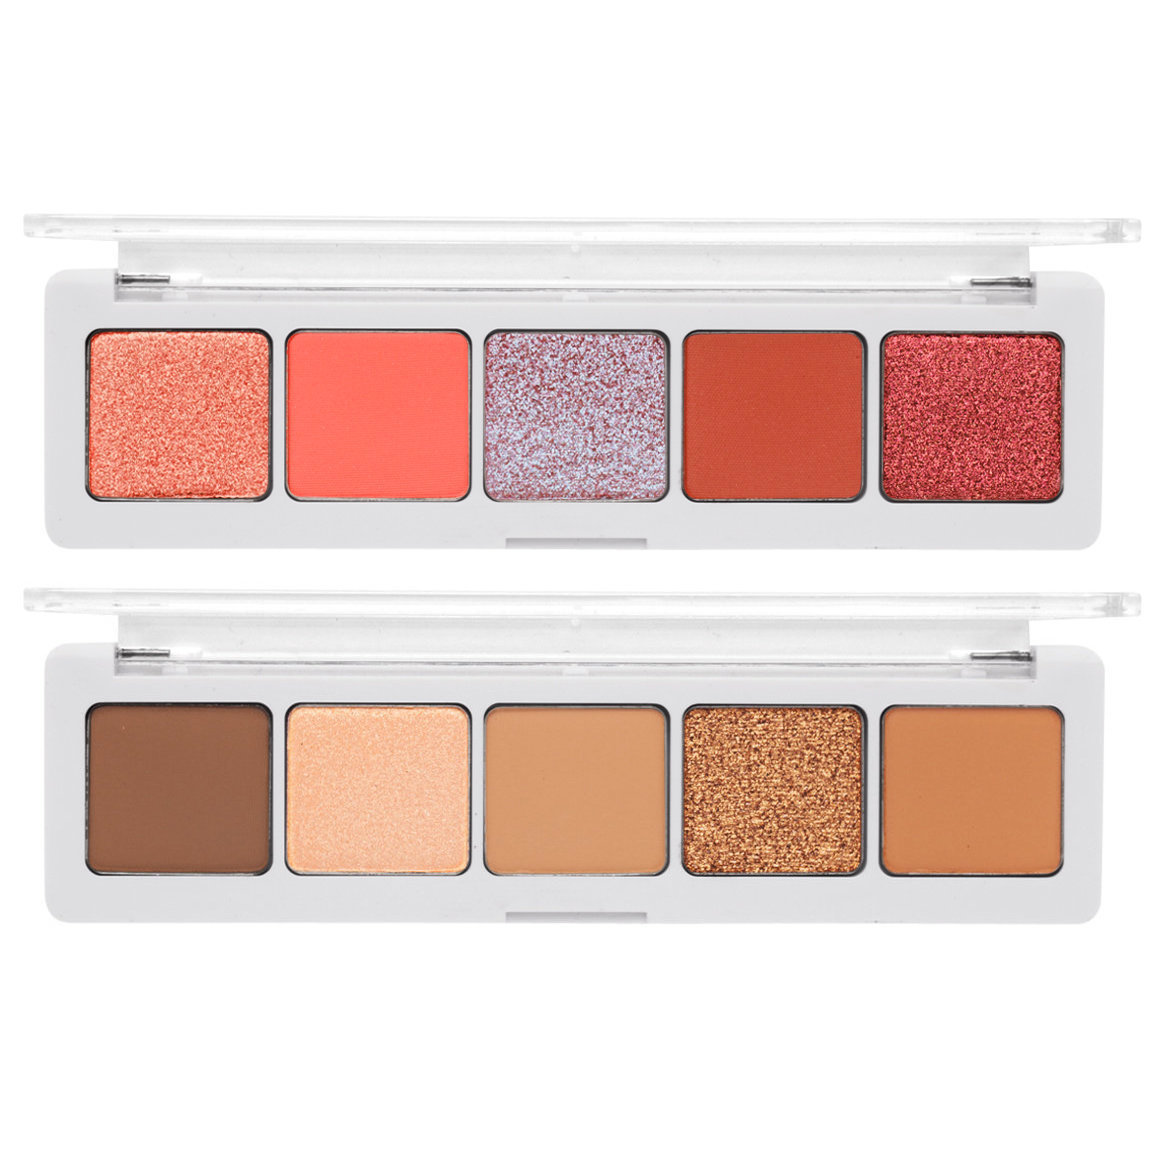 Natasha Denona Camel & Coral Palette Bundle alternative view 1 - product swatch.